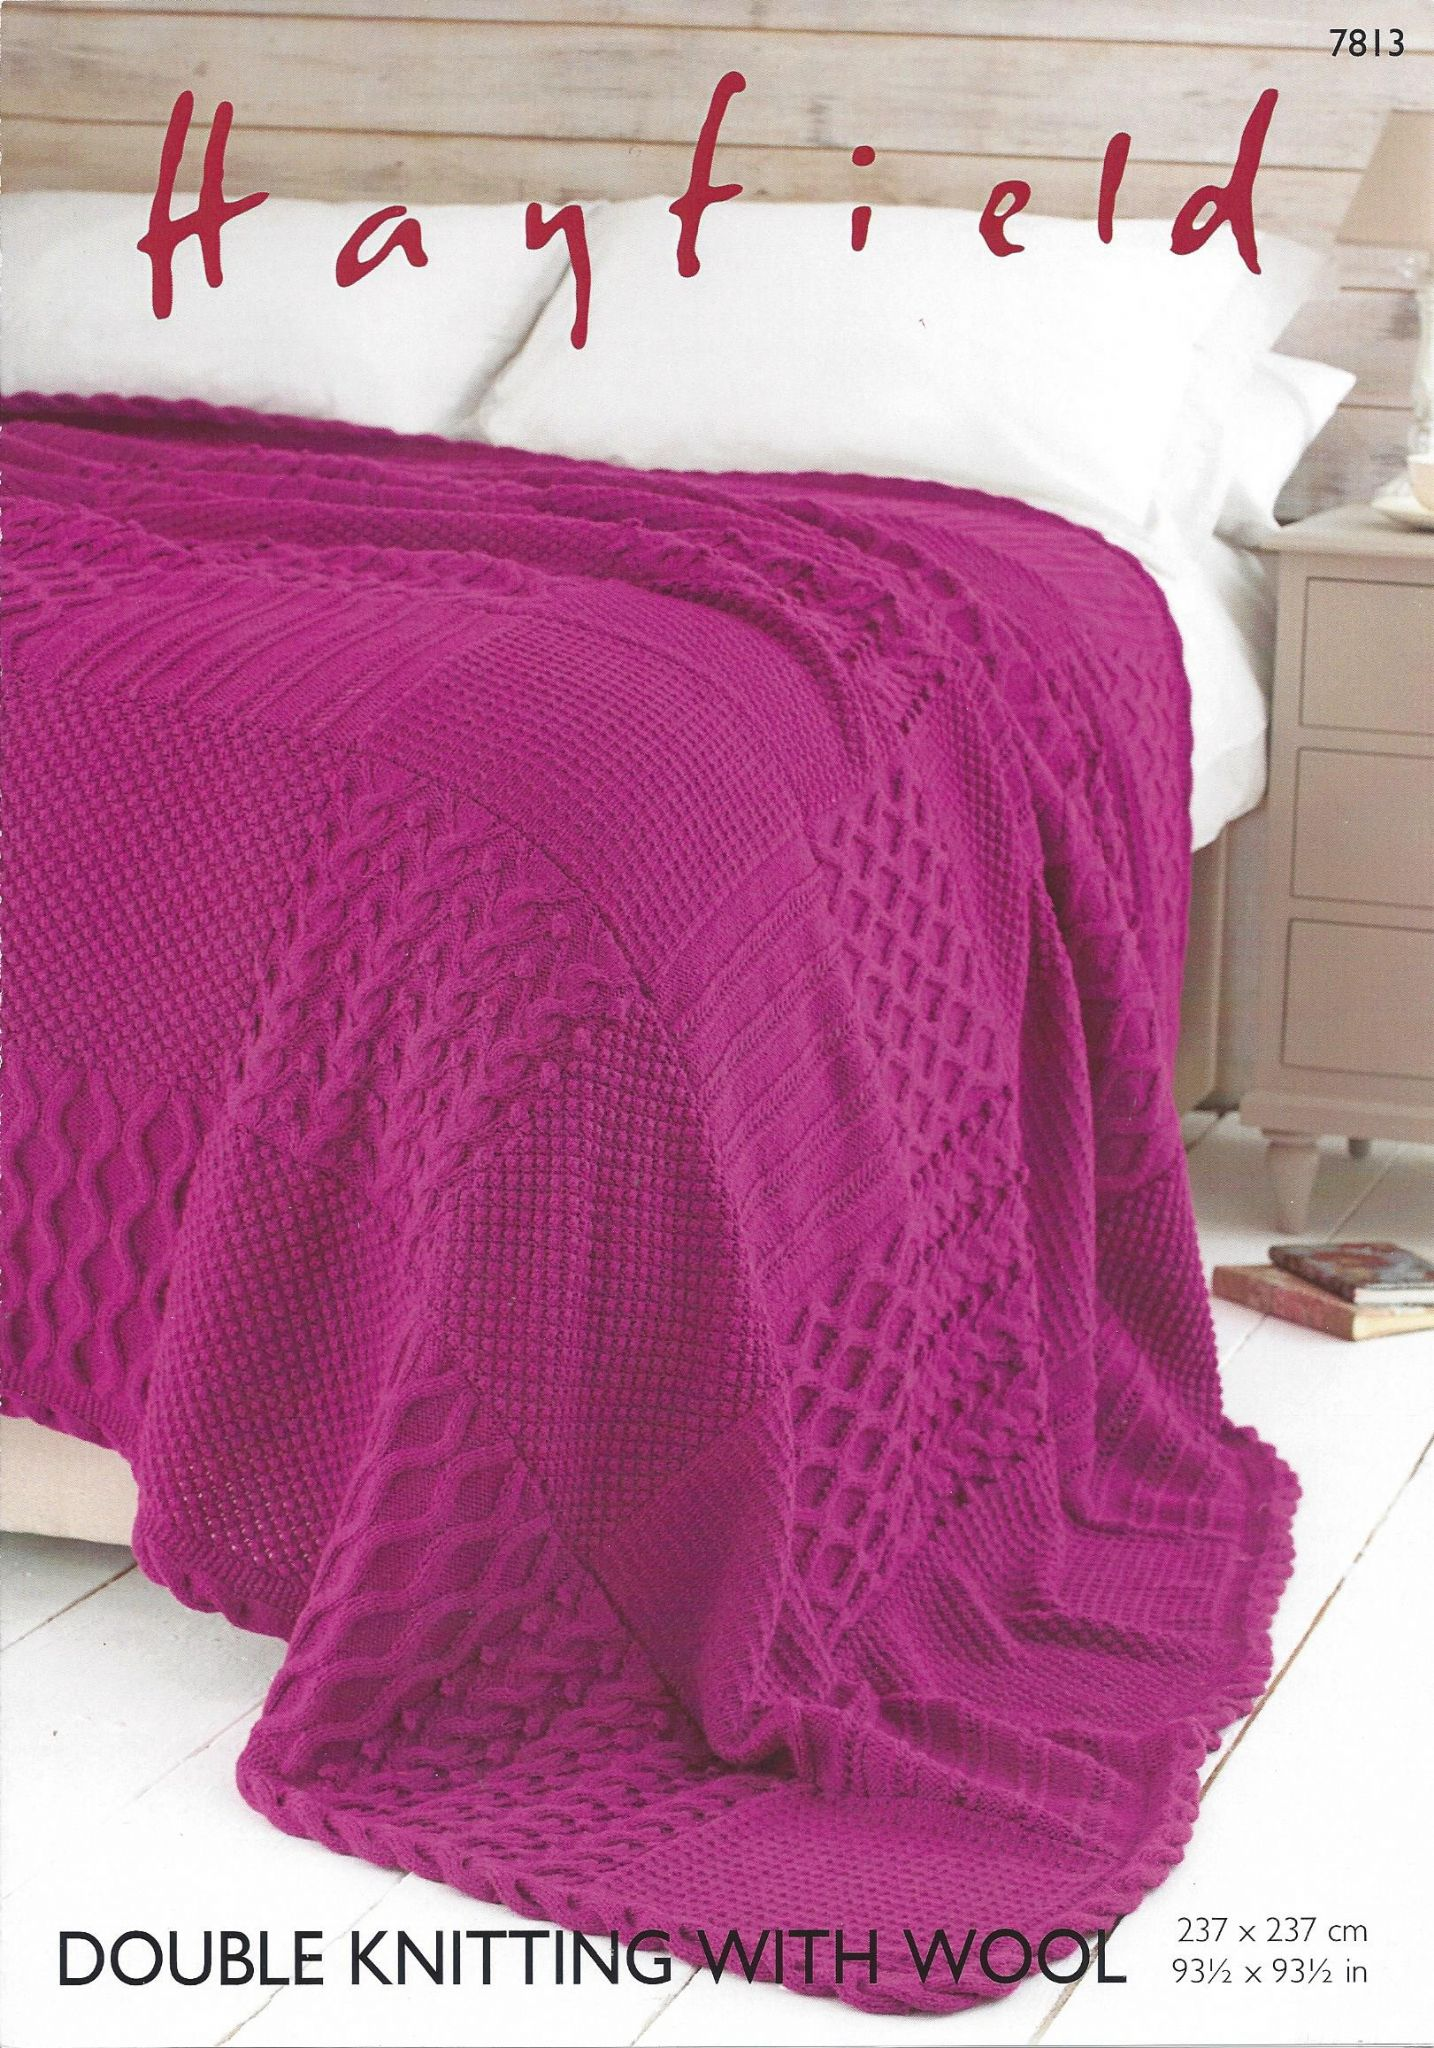 Hayfield DK with Wool - 7813 Bed Throw Knitting Pattern